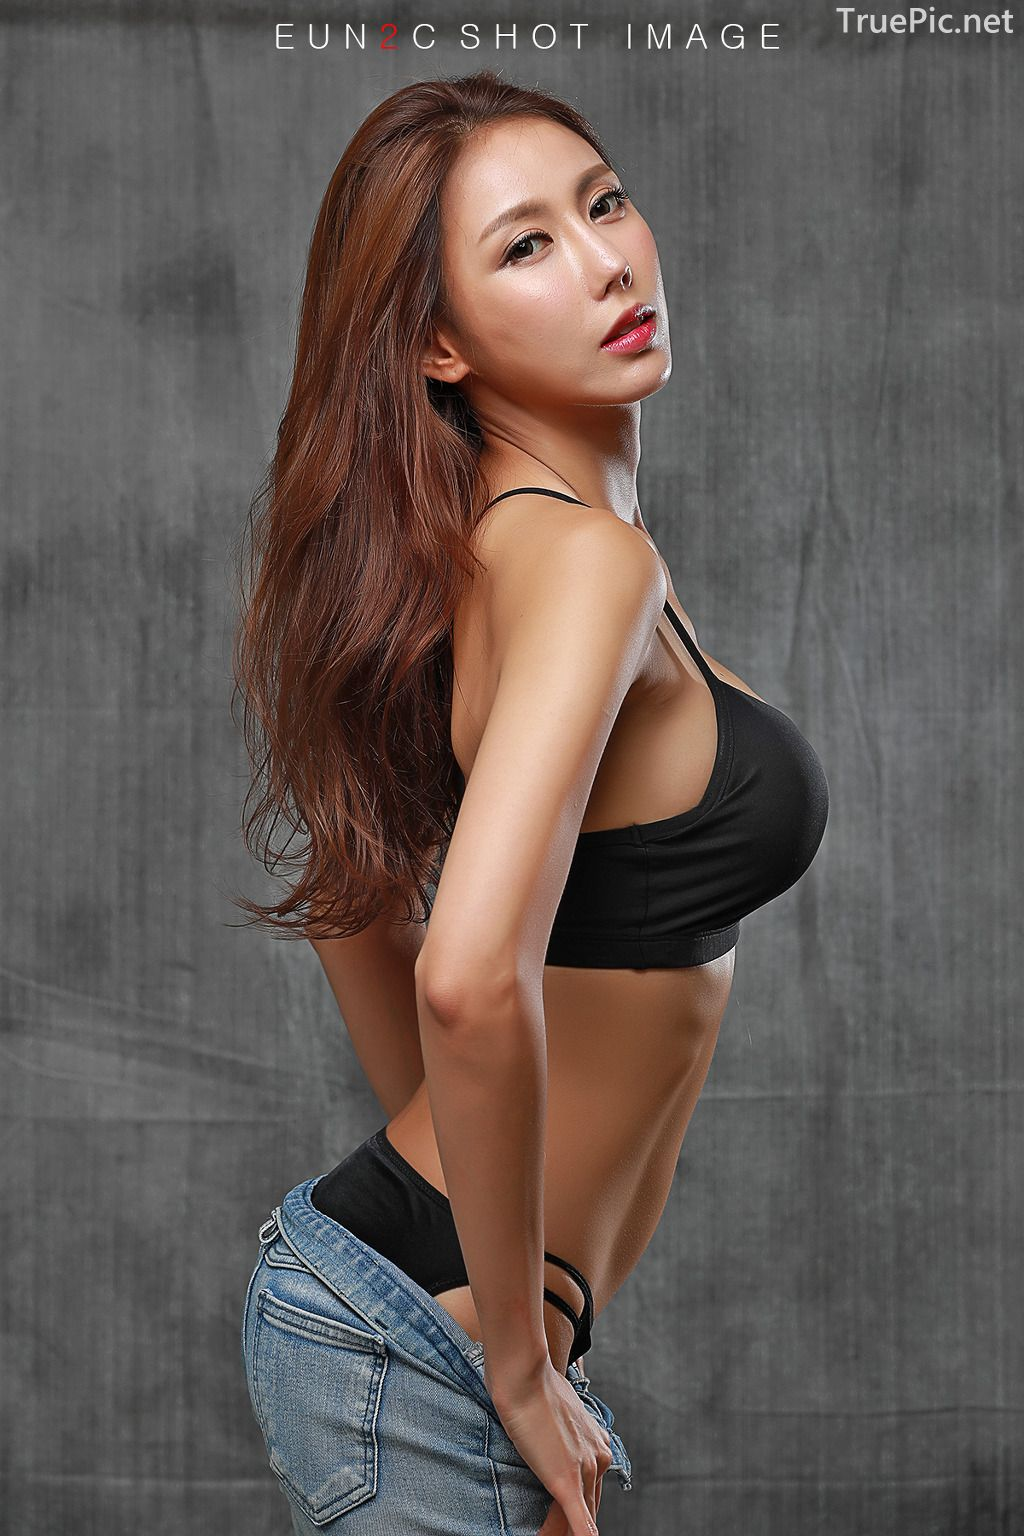 Image-Korean-model-Choi-Ye-Rok-Back-Lingerie-and-Jean-TruePic.net- Picture-10